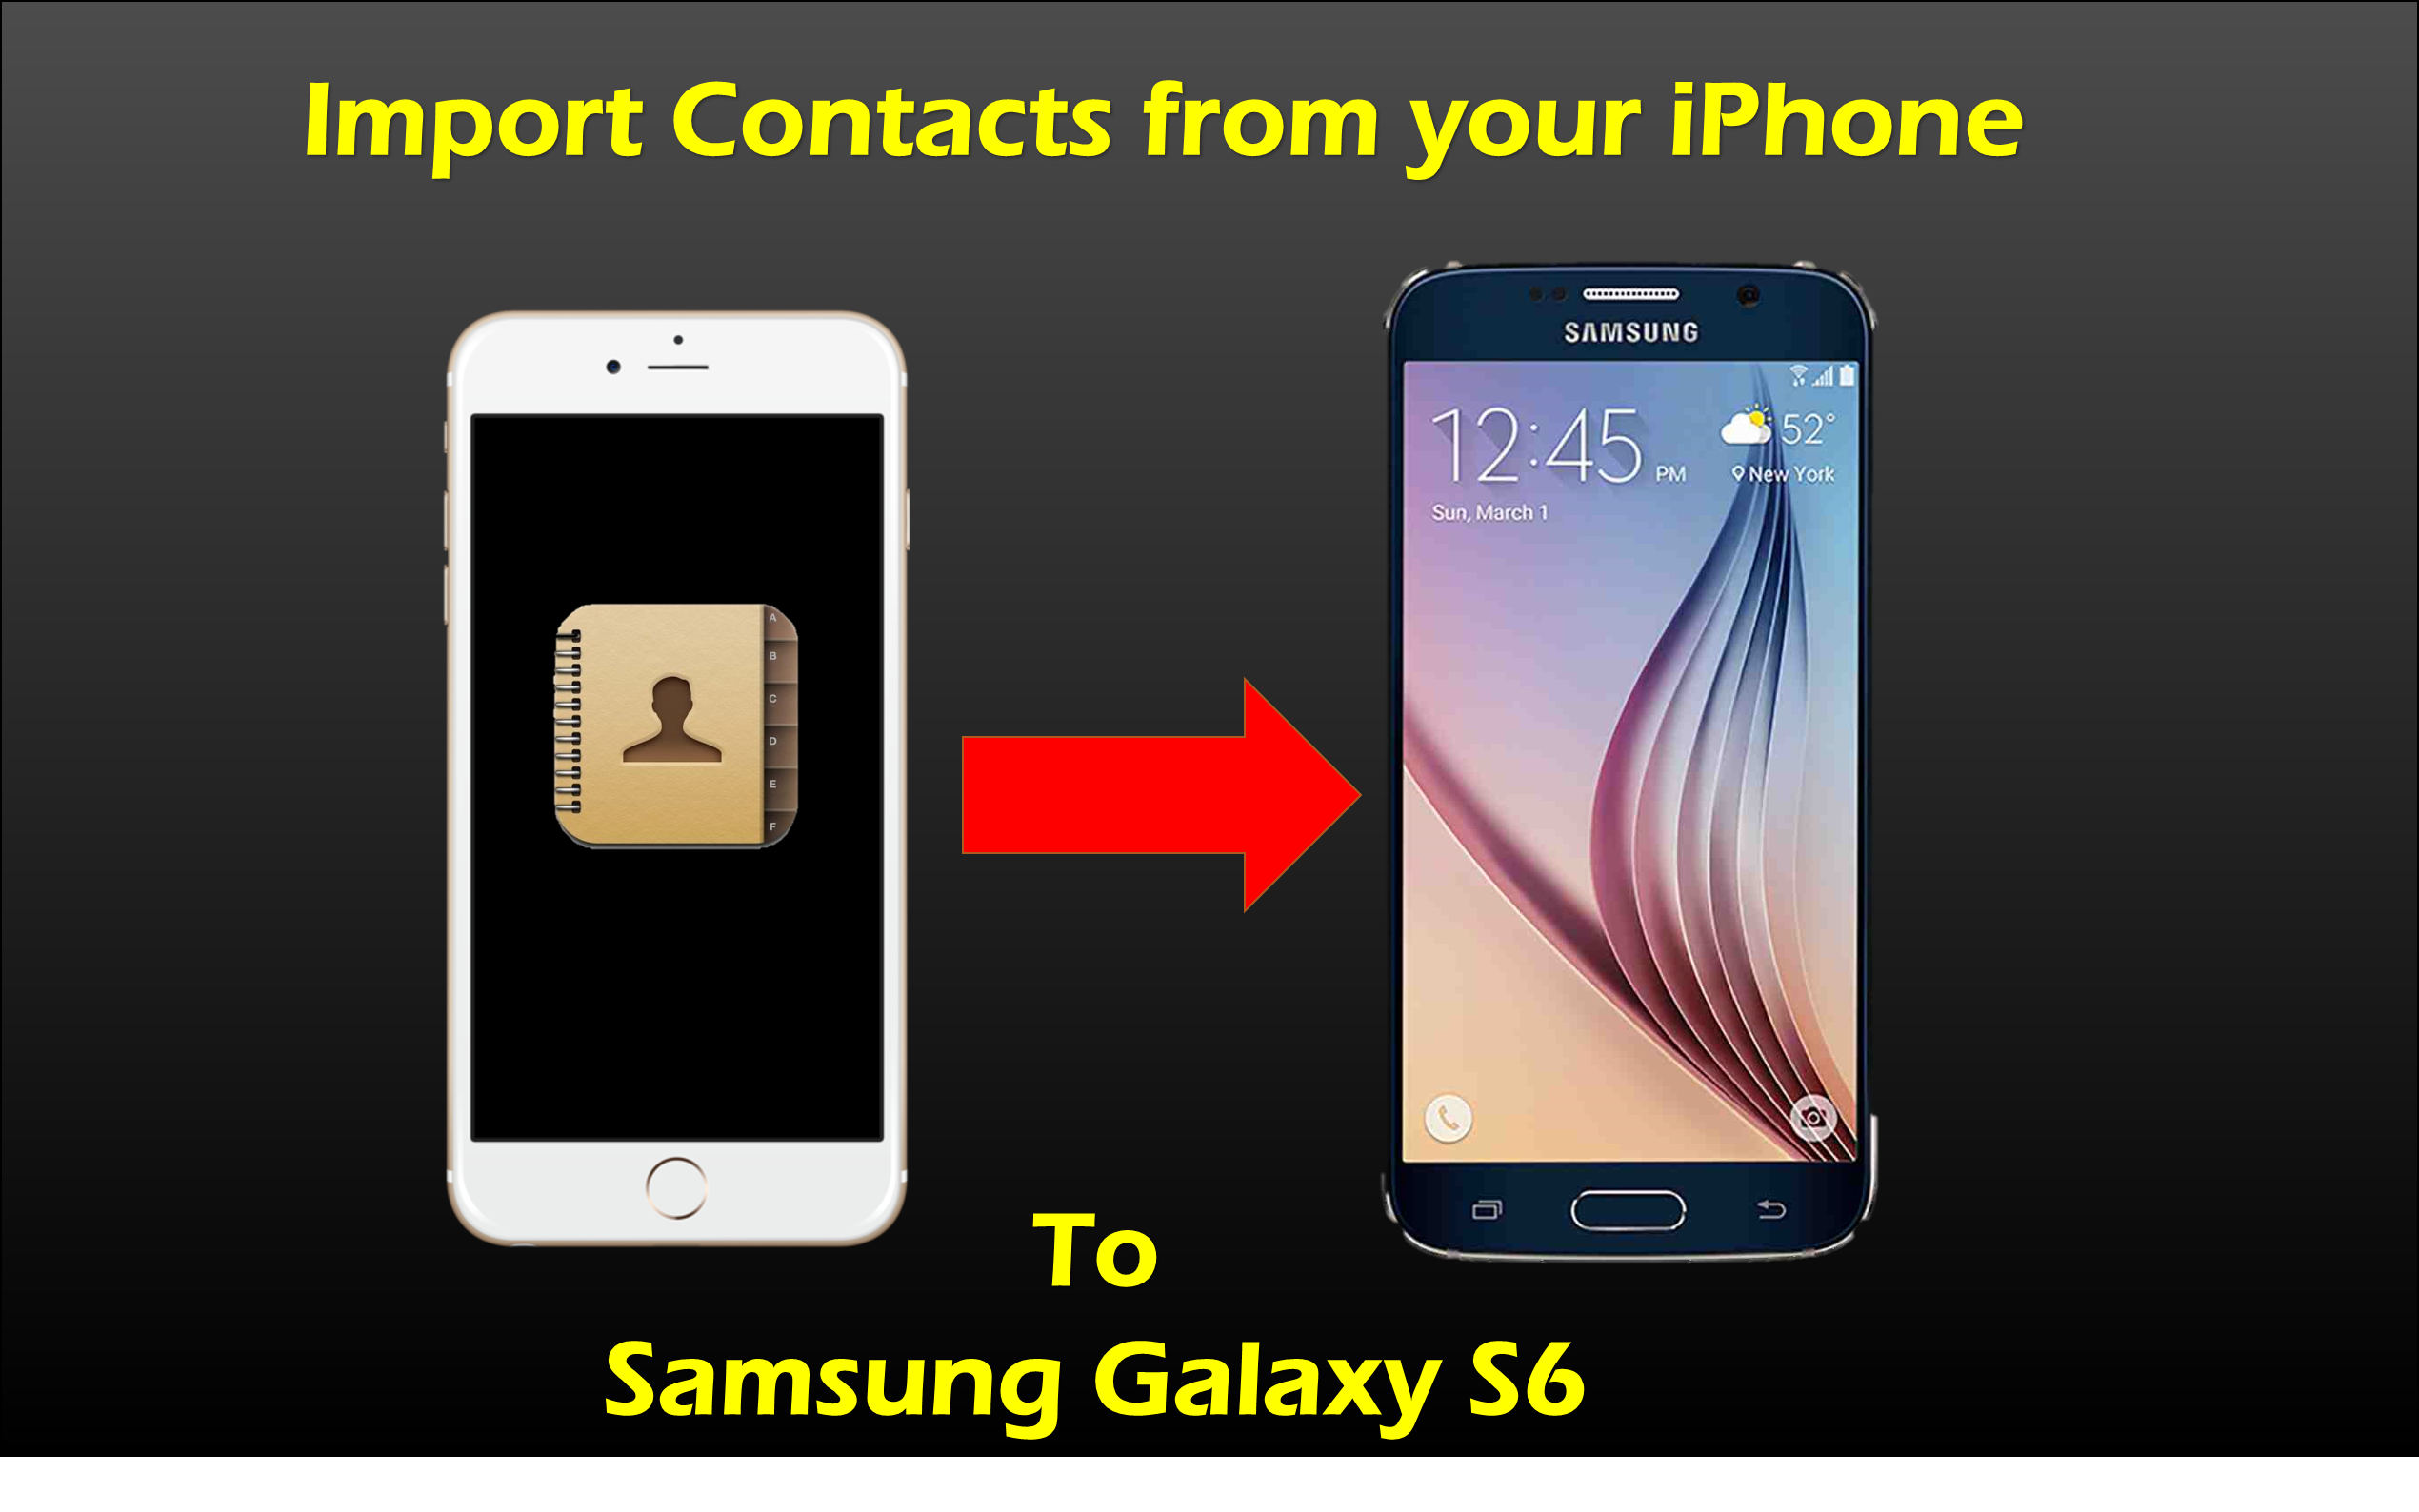 samsung galaxy s6 export contacts